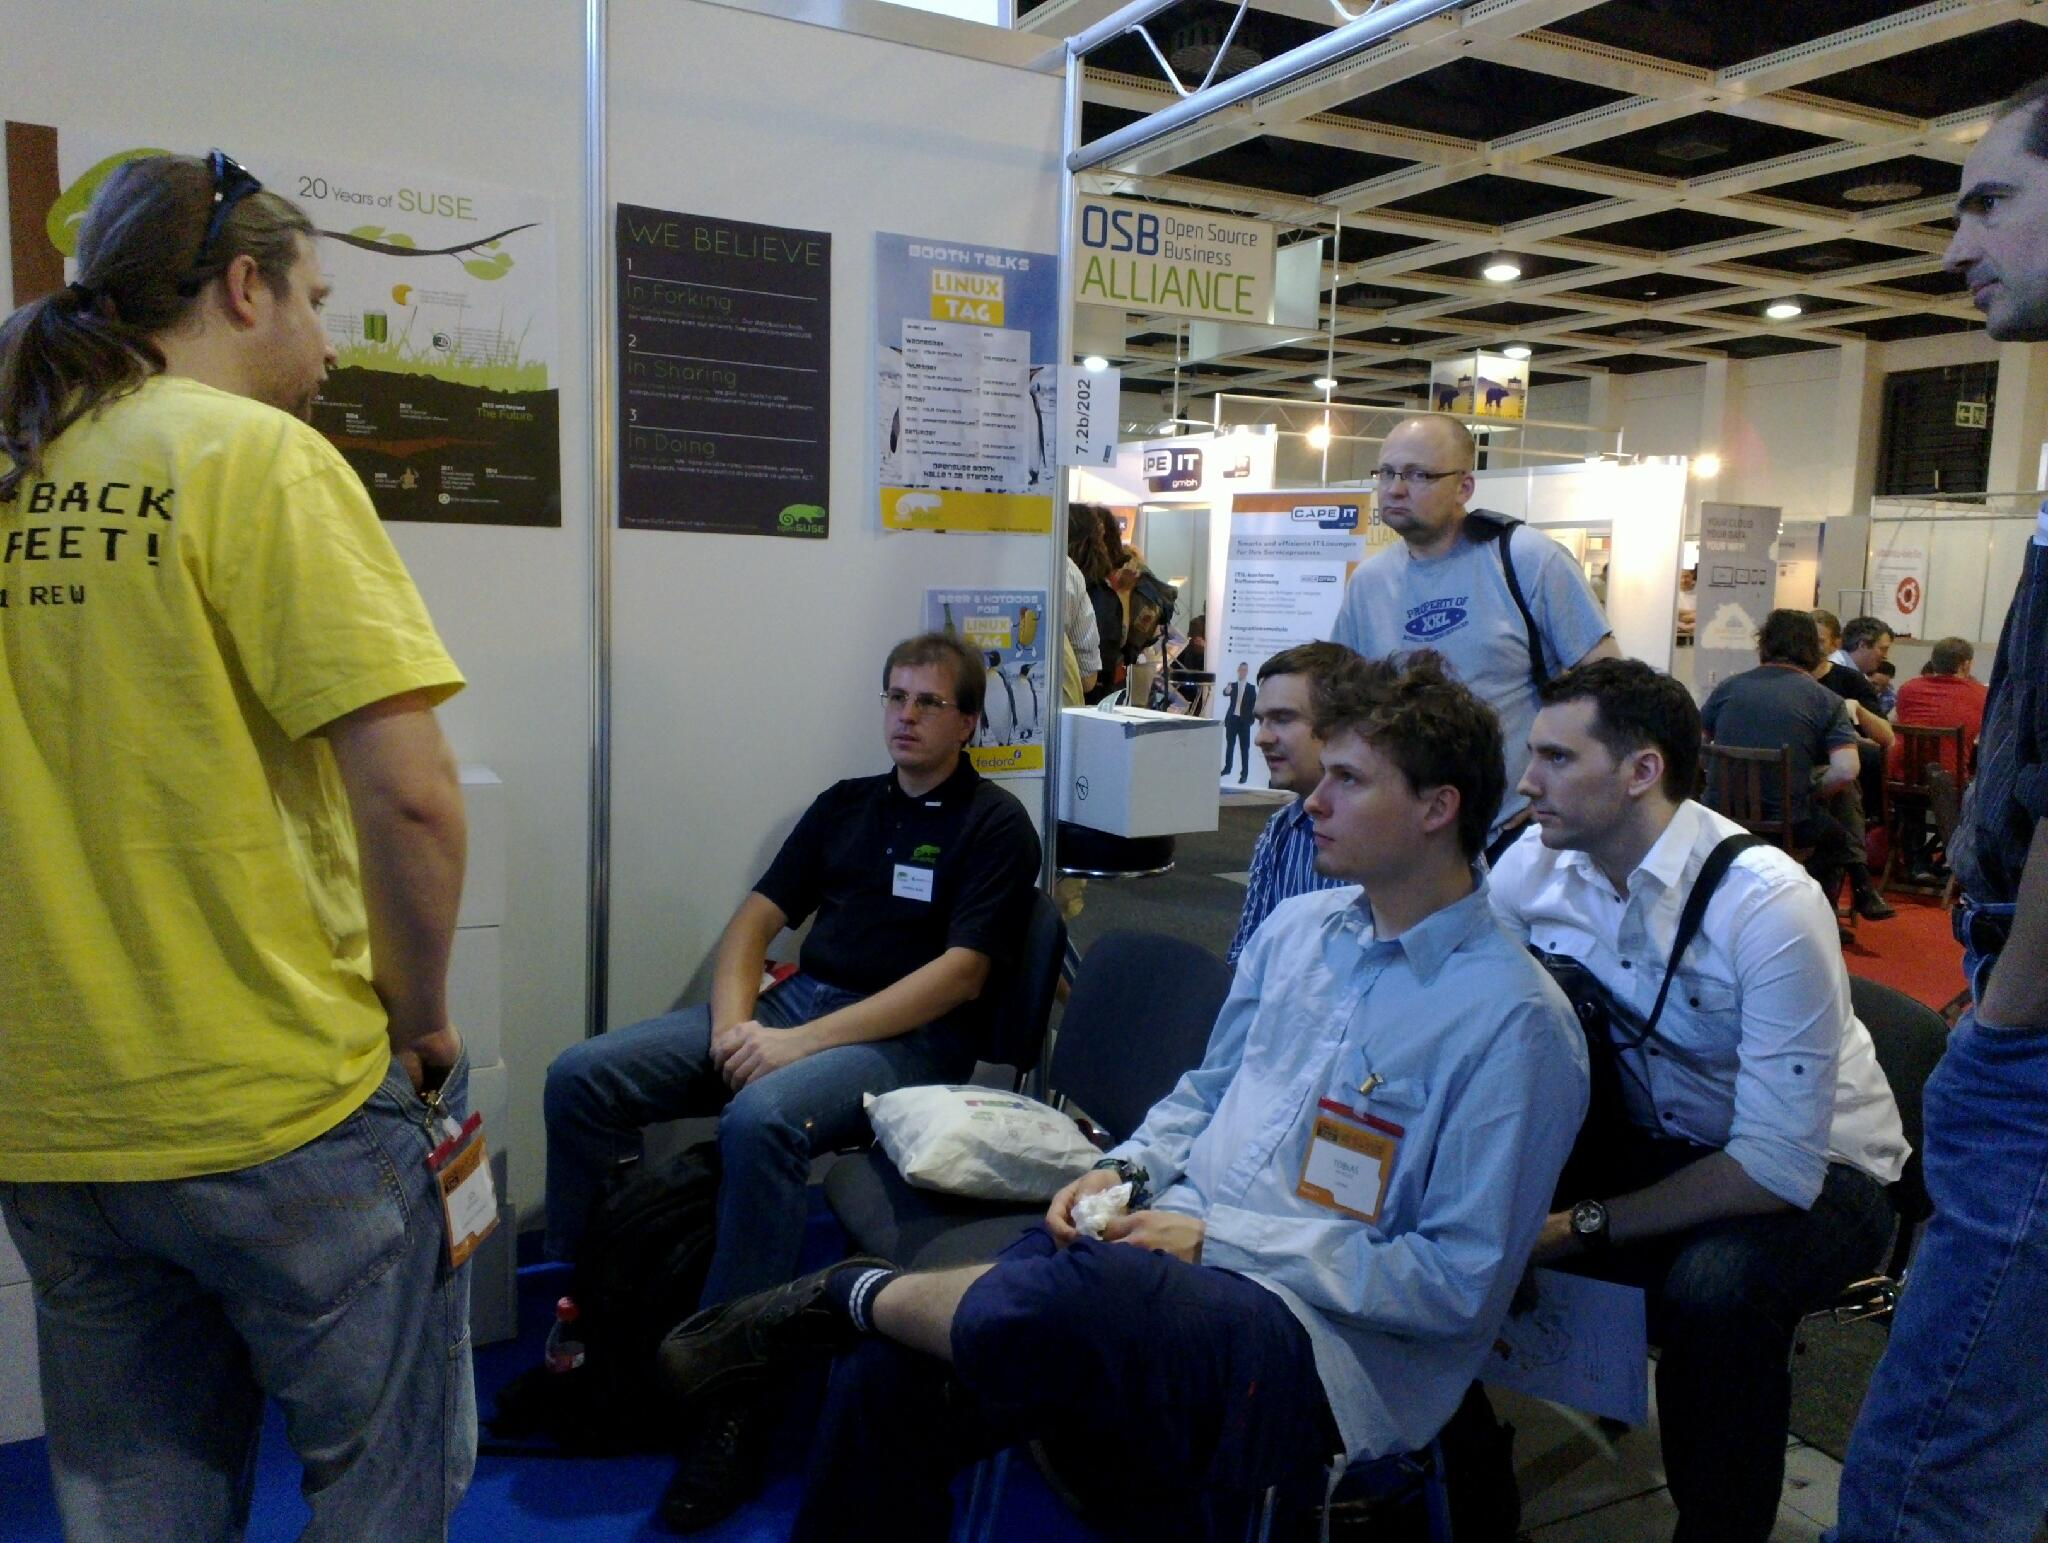 booth talk at openSUSE Booth